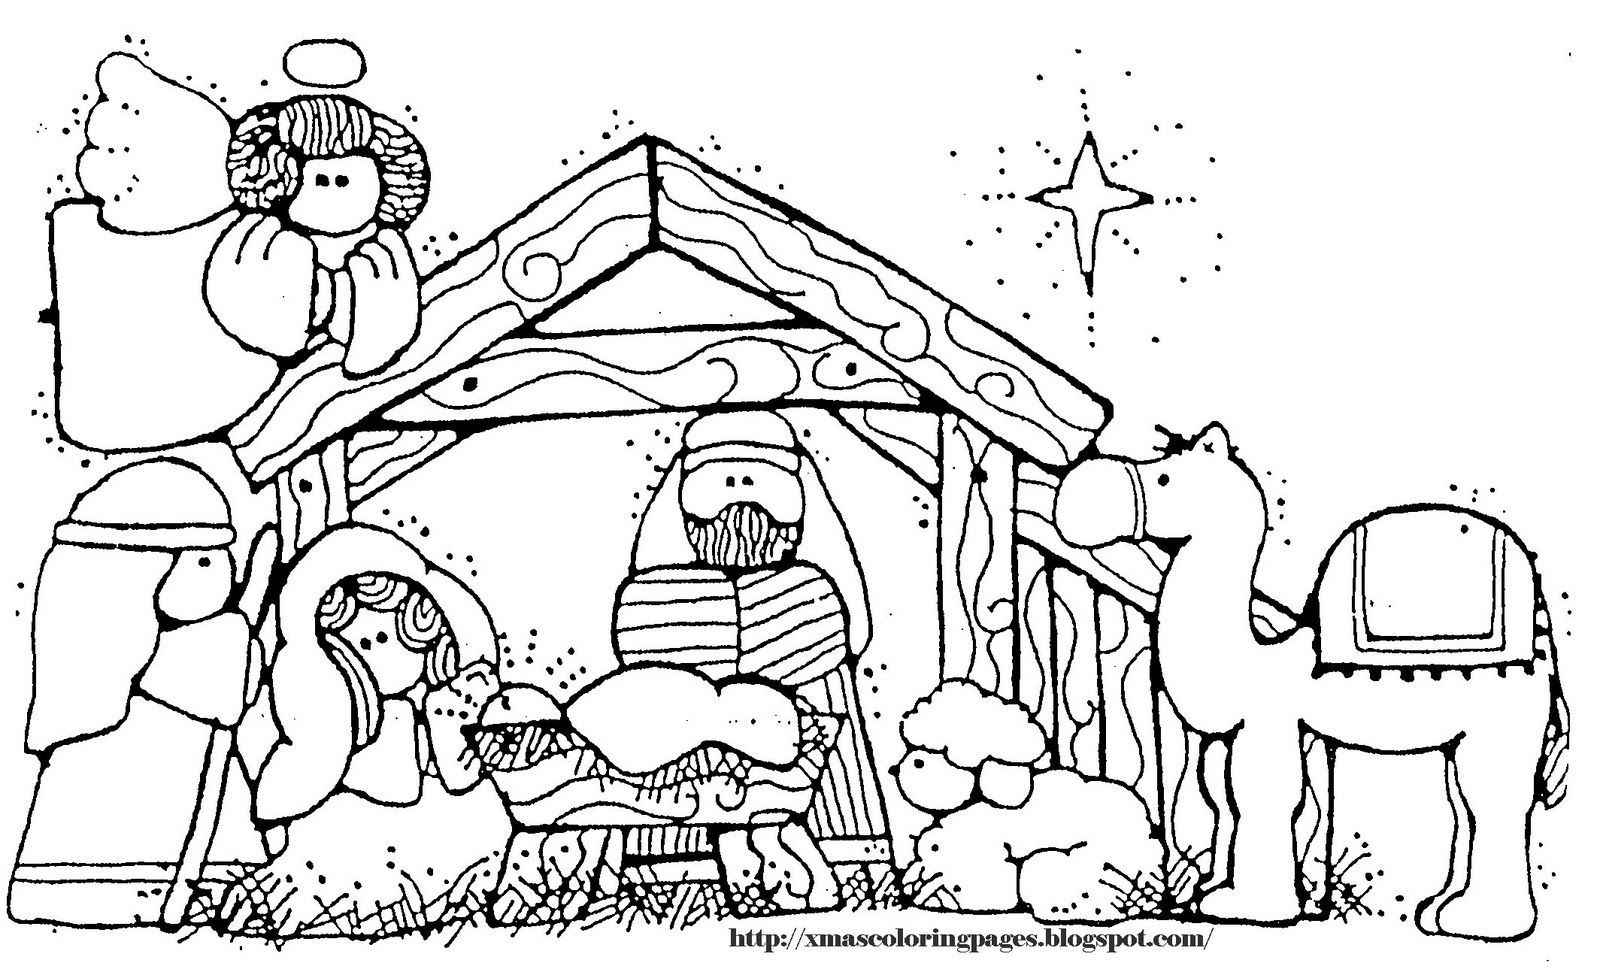 1600x975 Free African American Coloring Pages For Kids